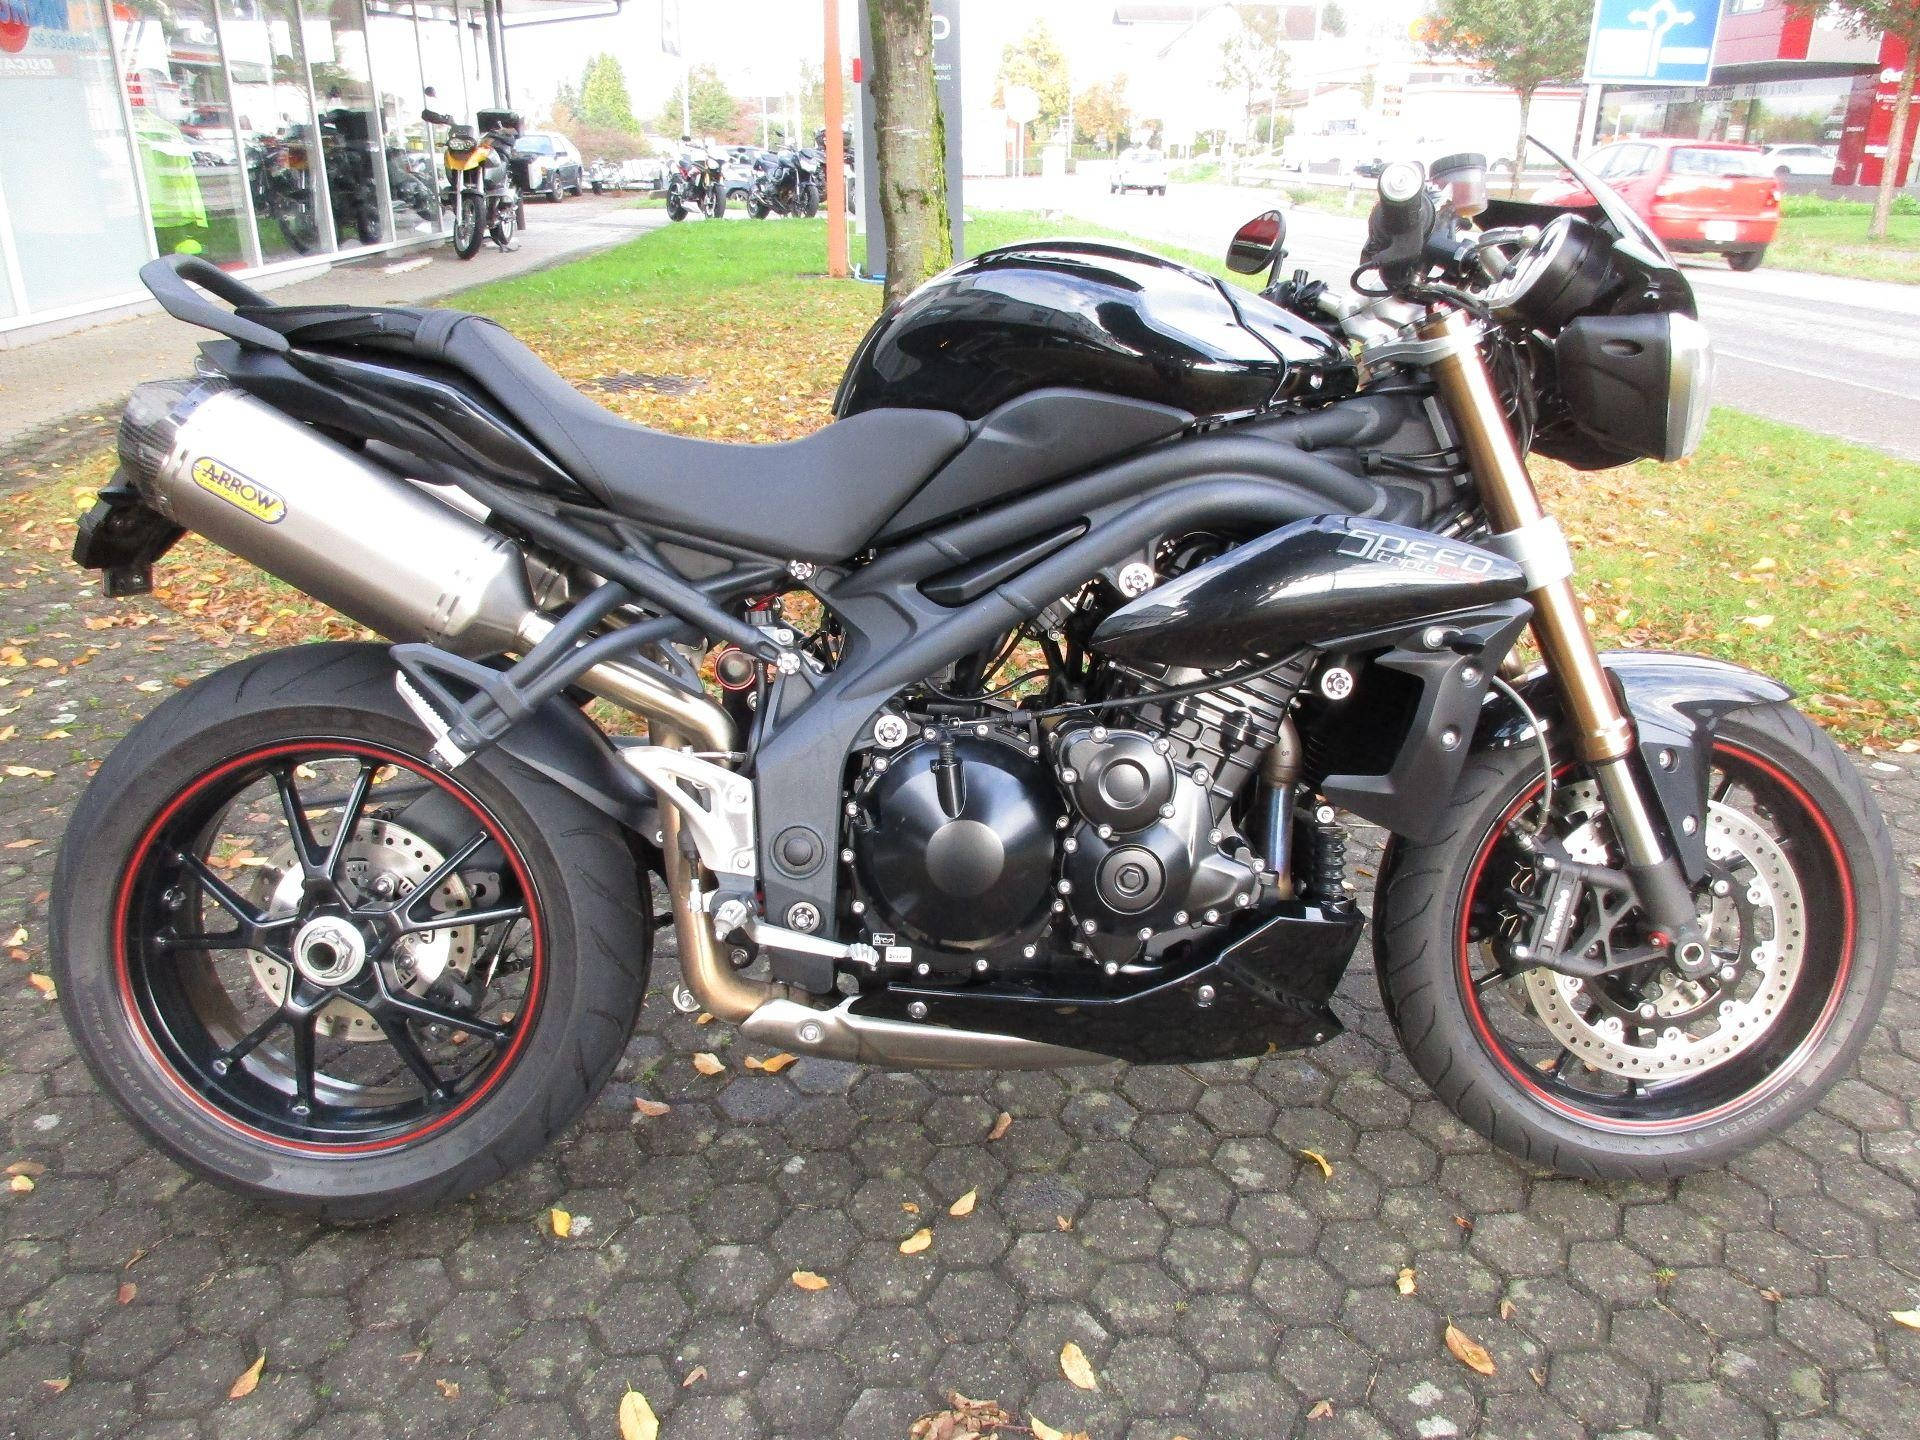 triumph speed triple 1050 abs motoria gmbh wohlen occasion. Black Bedroom Furniture Sets. Home Design Ideas